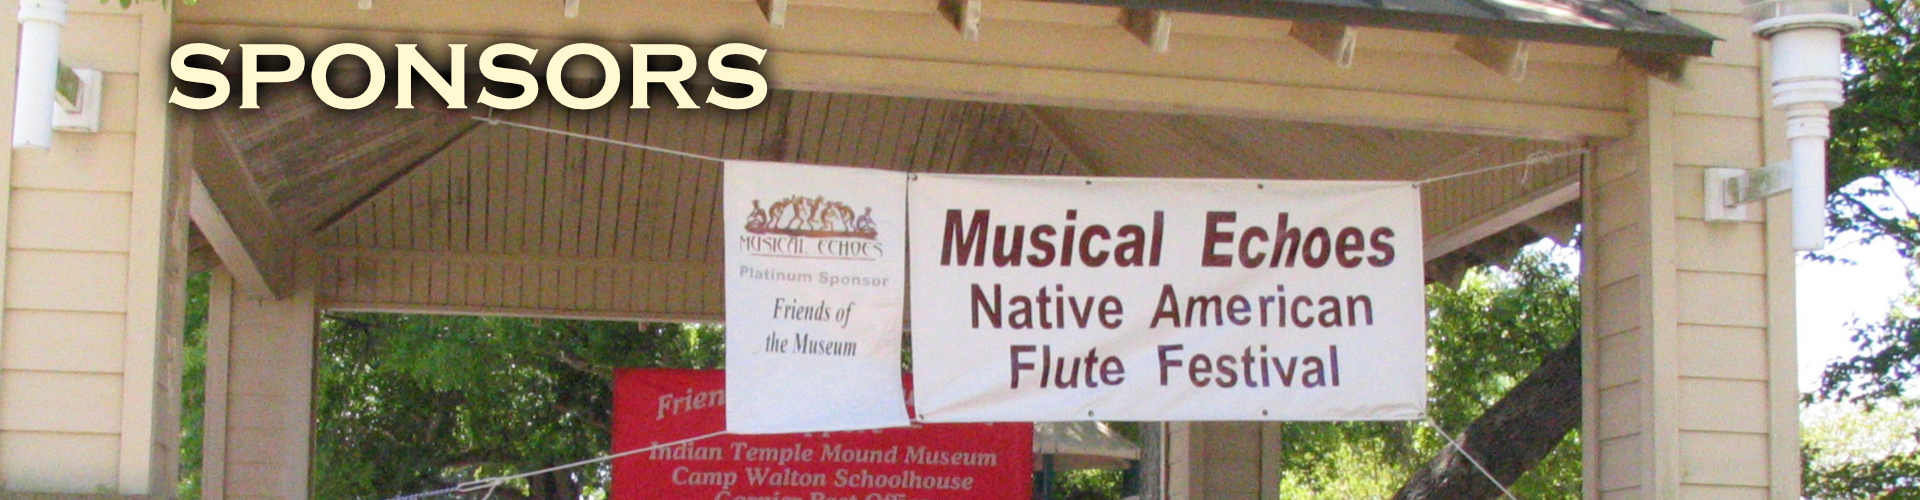 Musical Echoes Sponsors